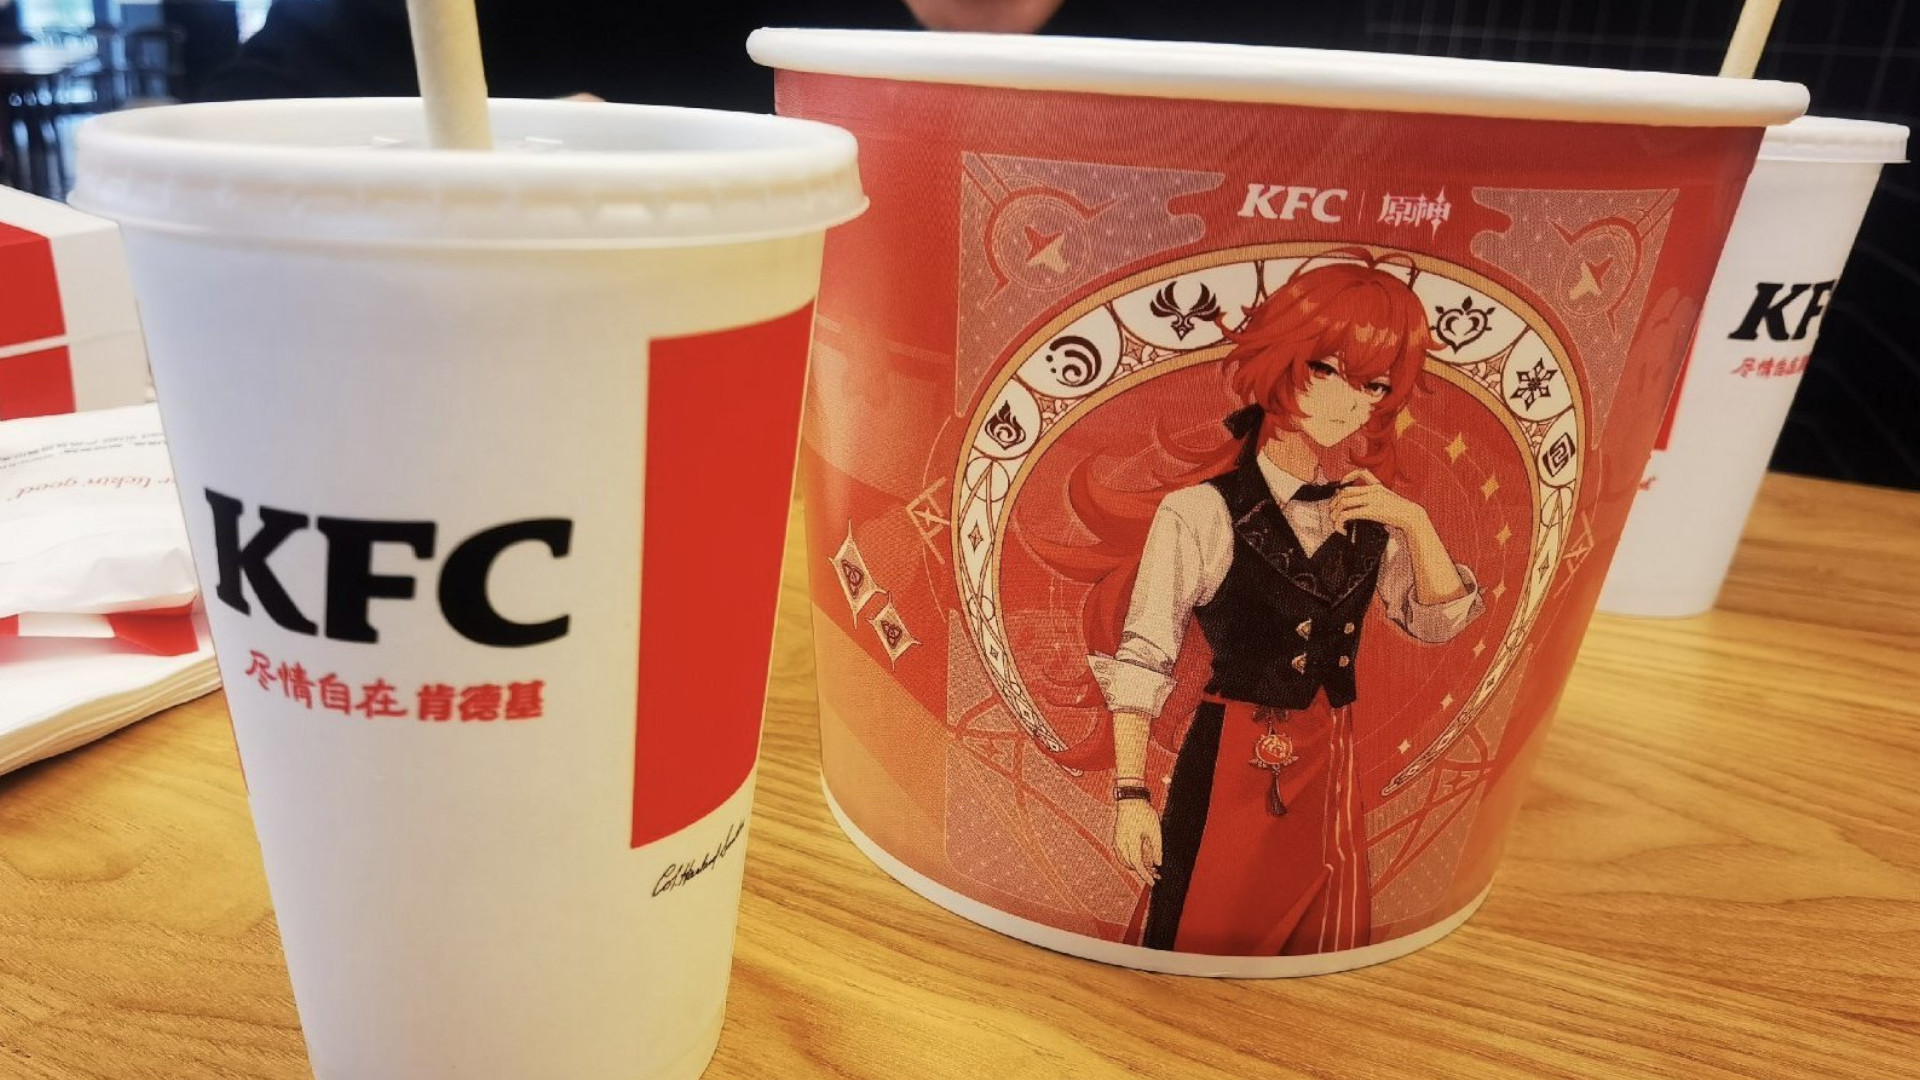 Genshin Impact event asks players to shout at KFC employees for pins - PCGamesN